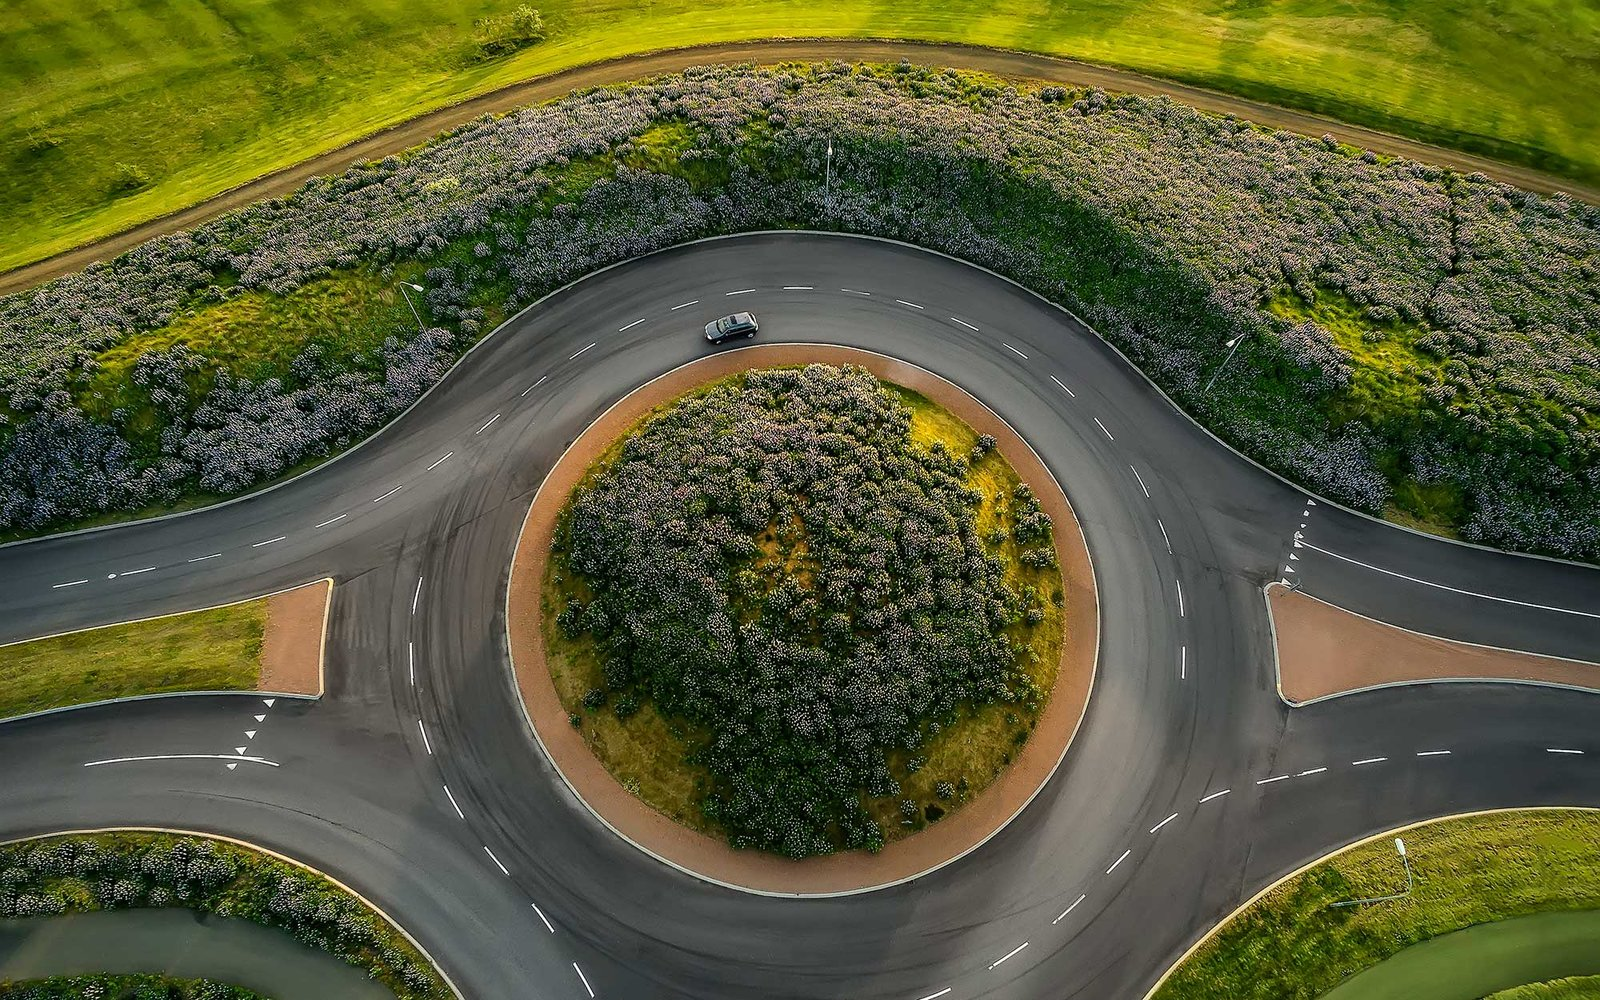 Traffic Circle and Lupines